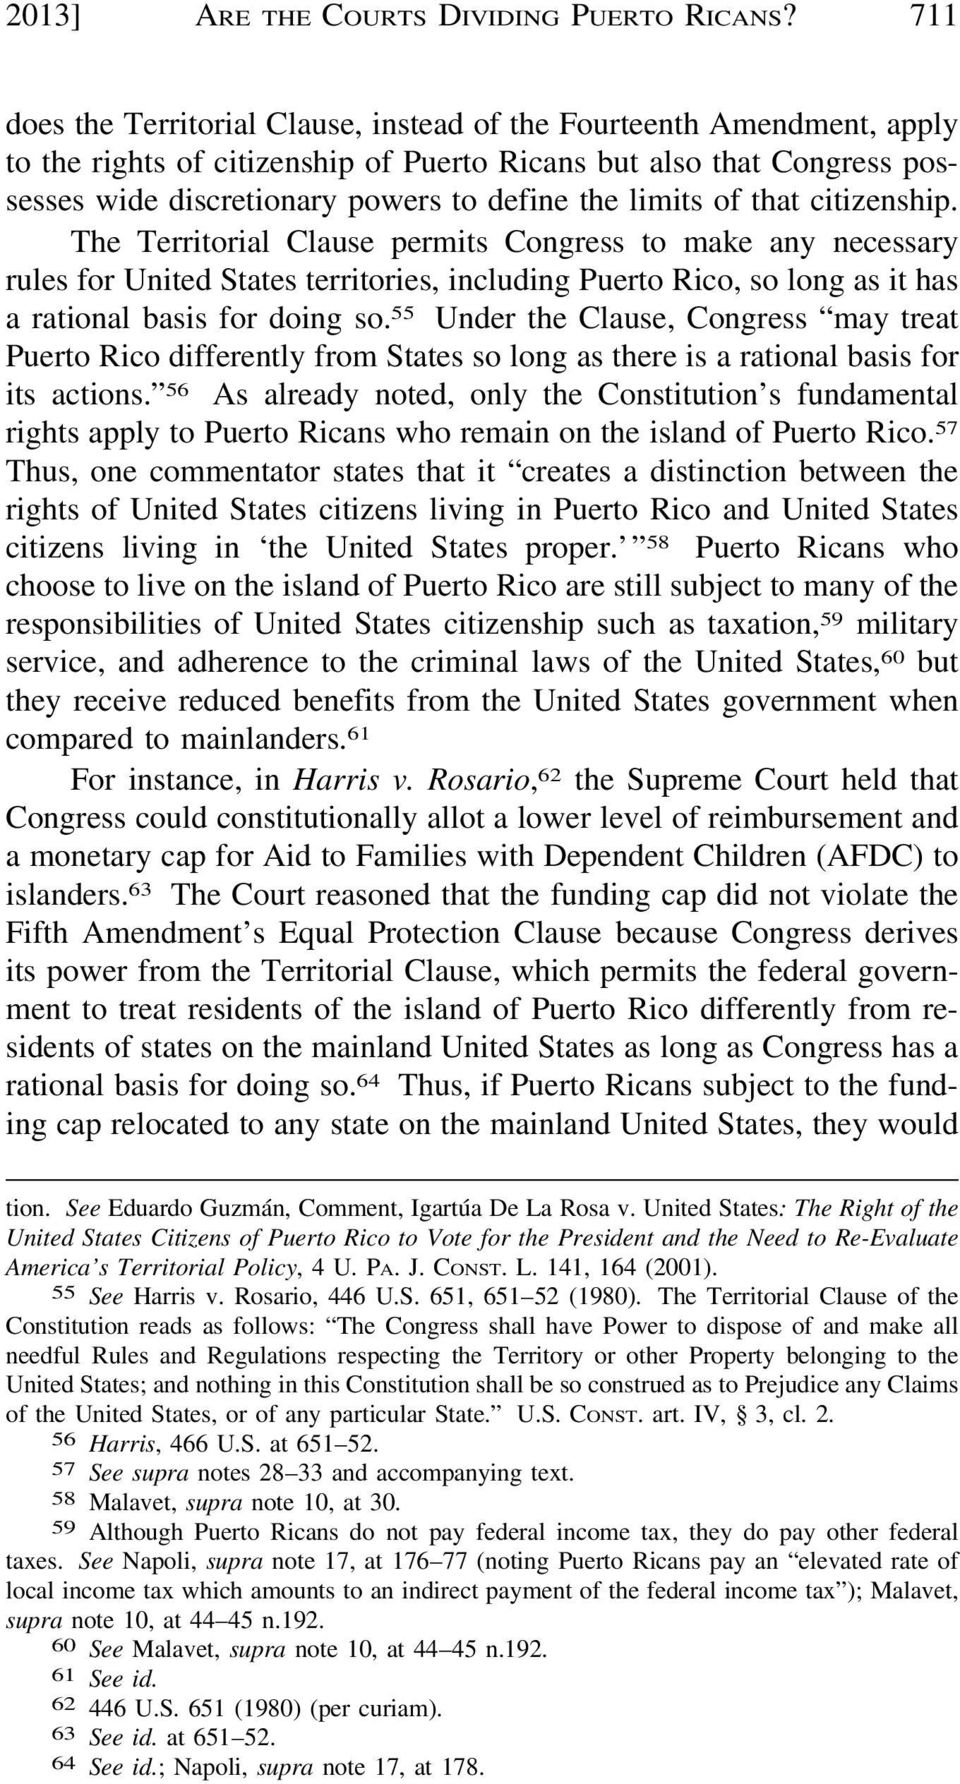 limits of that citizenship. The Territorial Clause permits Congress to make any necessary rules for United States territories, including Puerto Rico, so long as it has a rational basis for doing so.